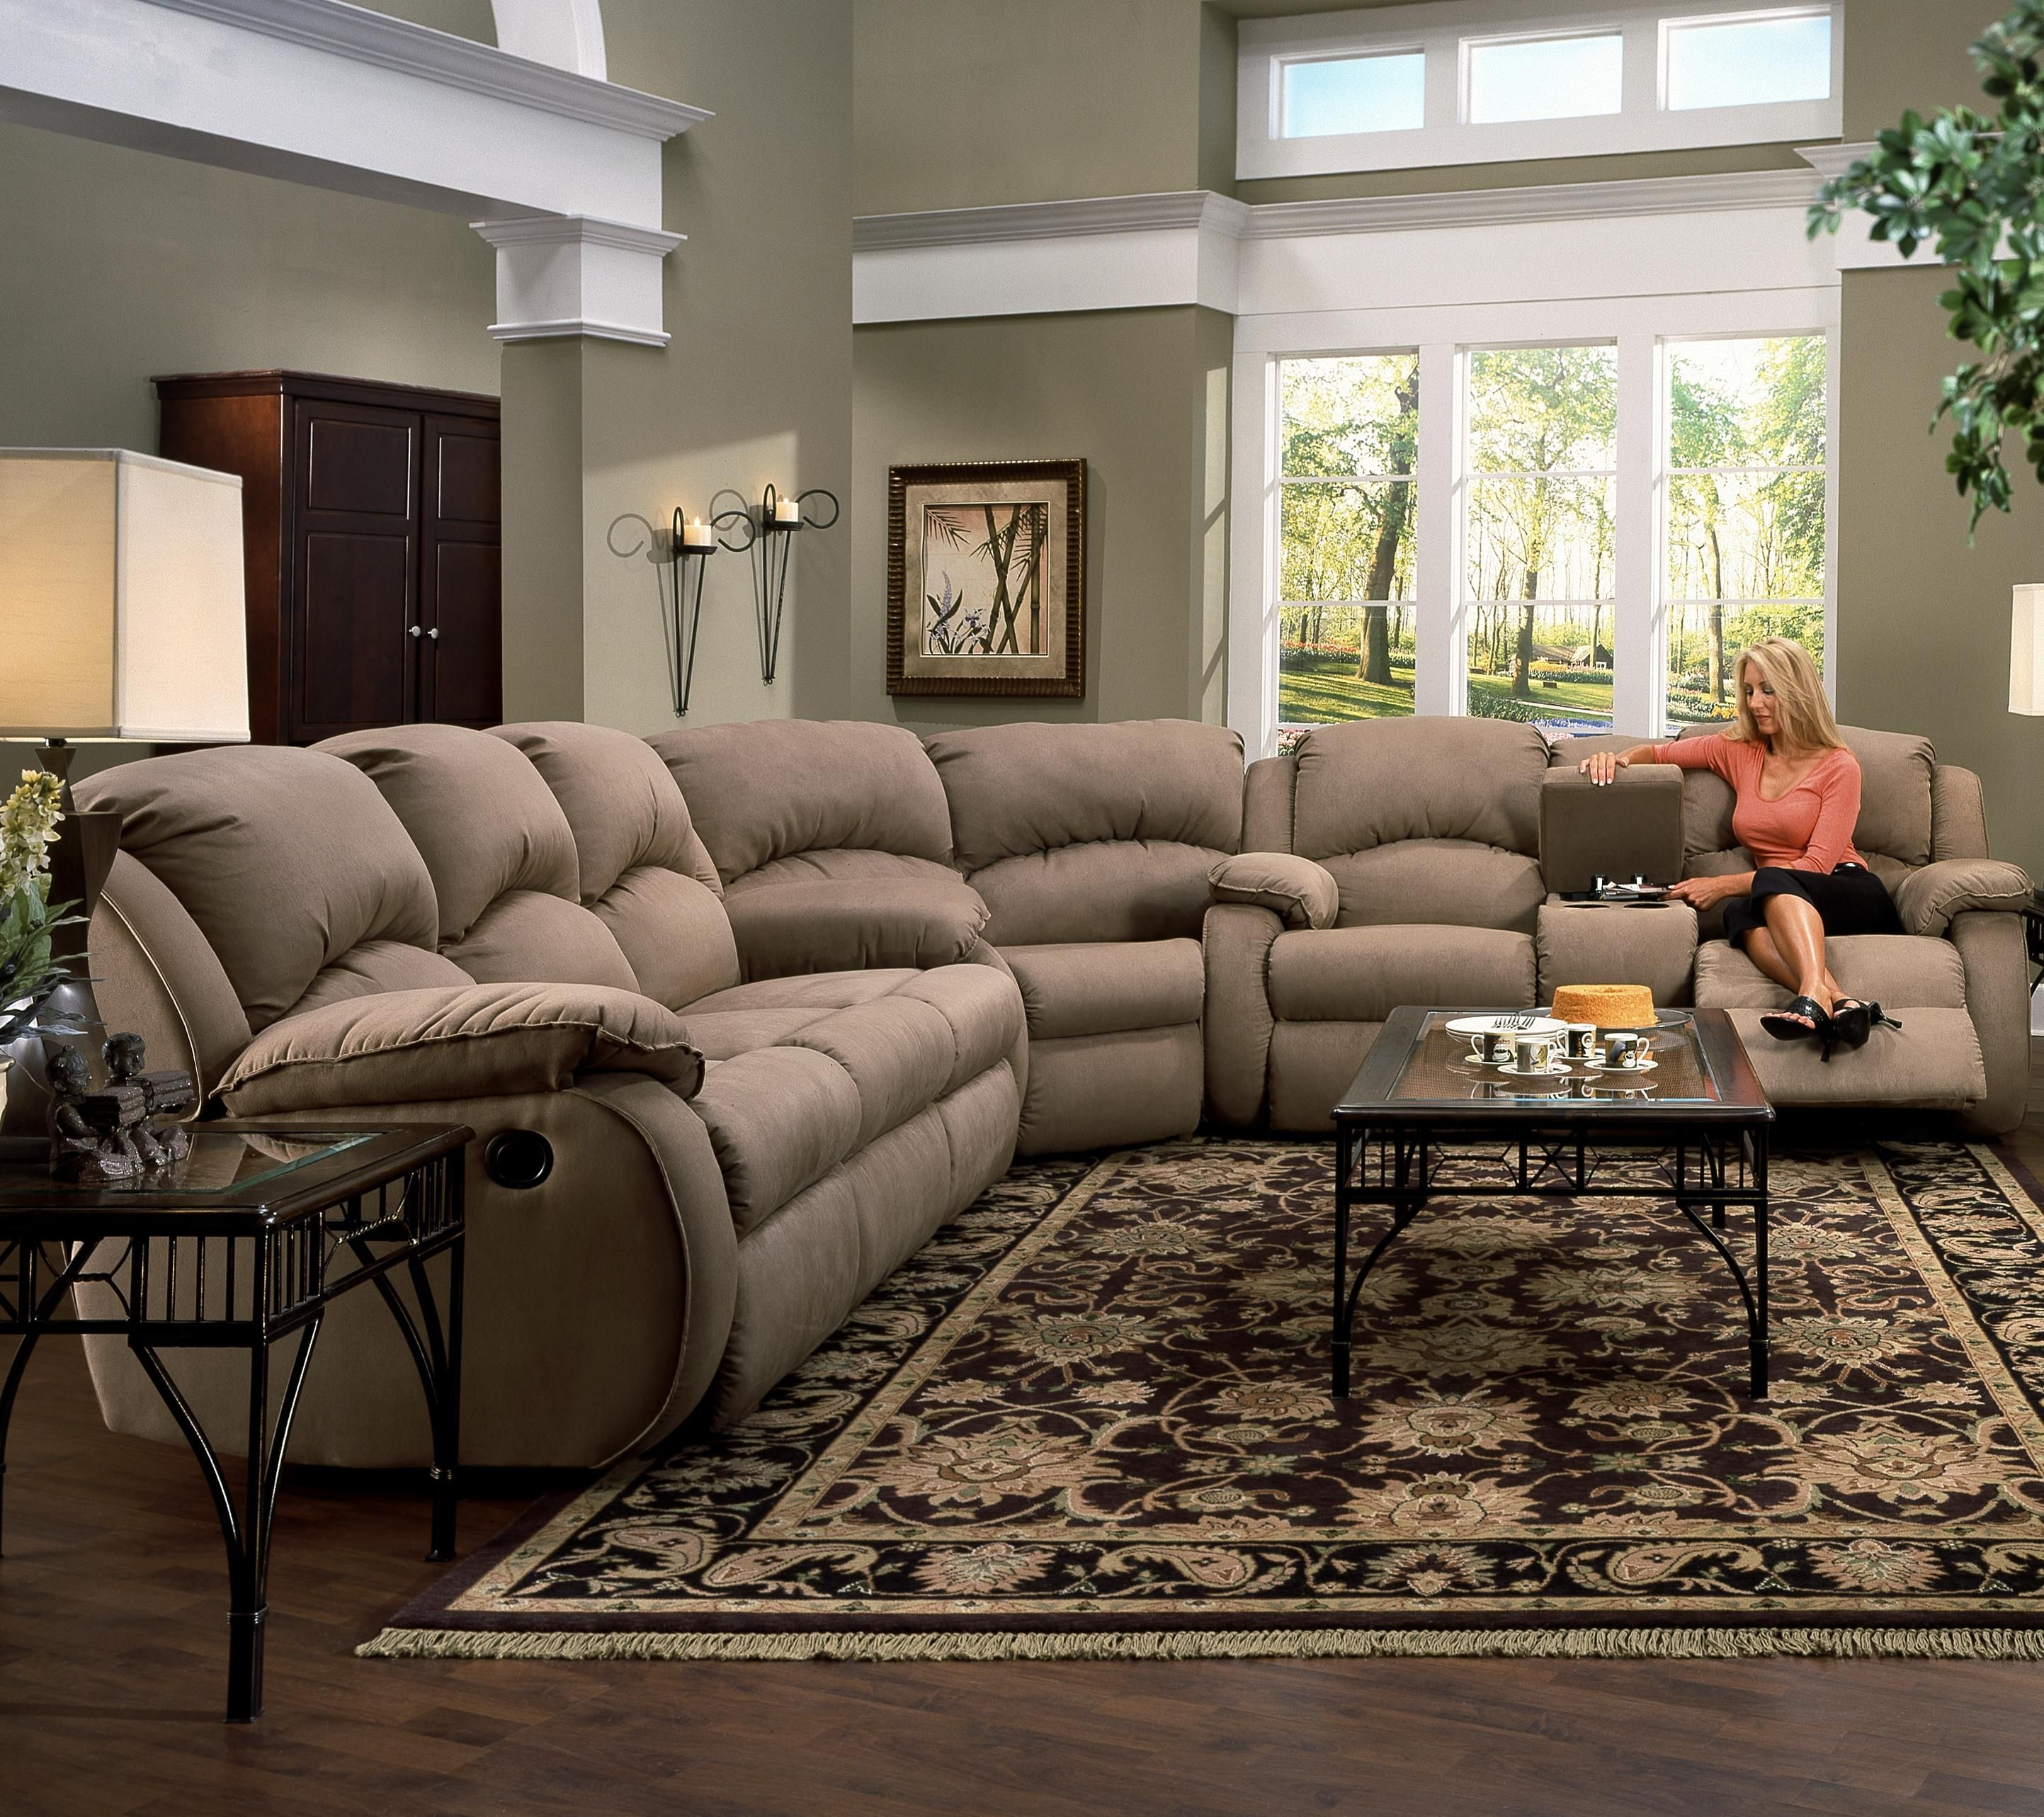 Cagney Sectional Sofa By Southern Motion Dream Home